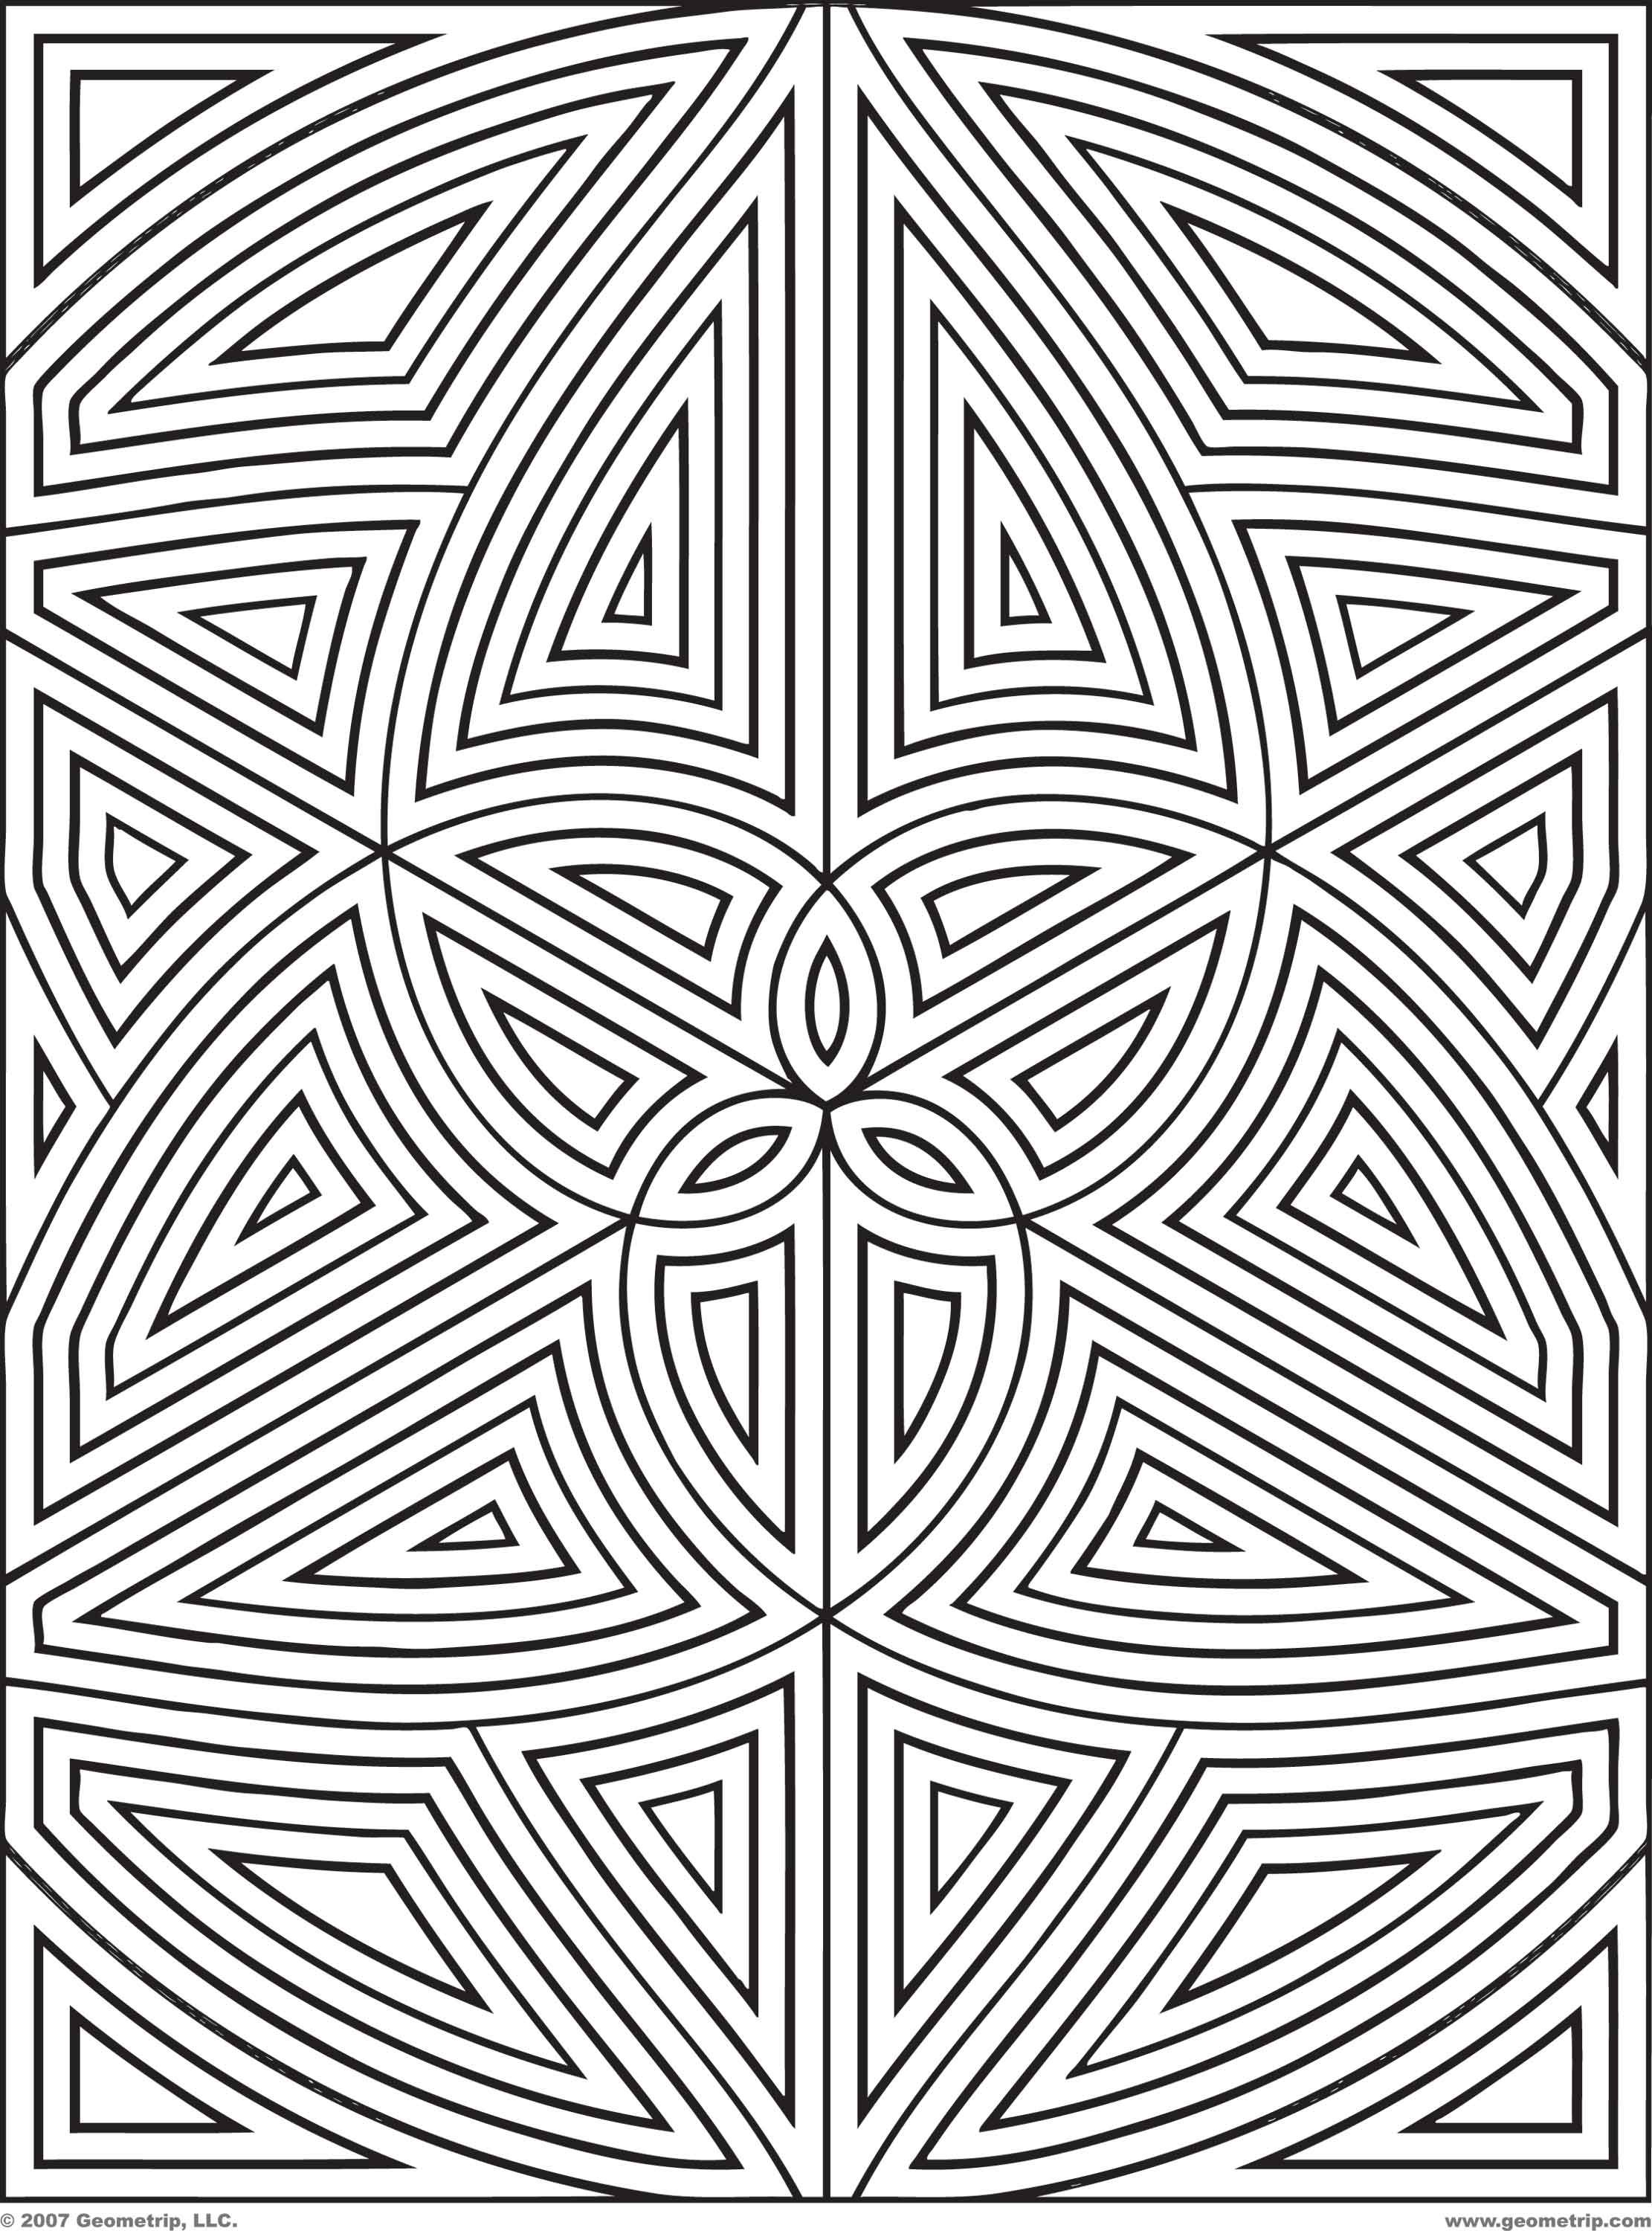 Lotus designs coloring book - Difficult Geometric Design Coloring Pages Rectangles Page 1 Of 2